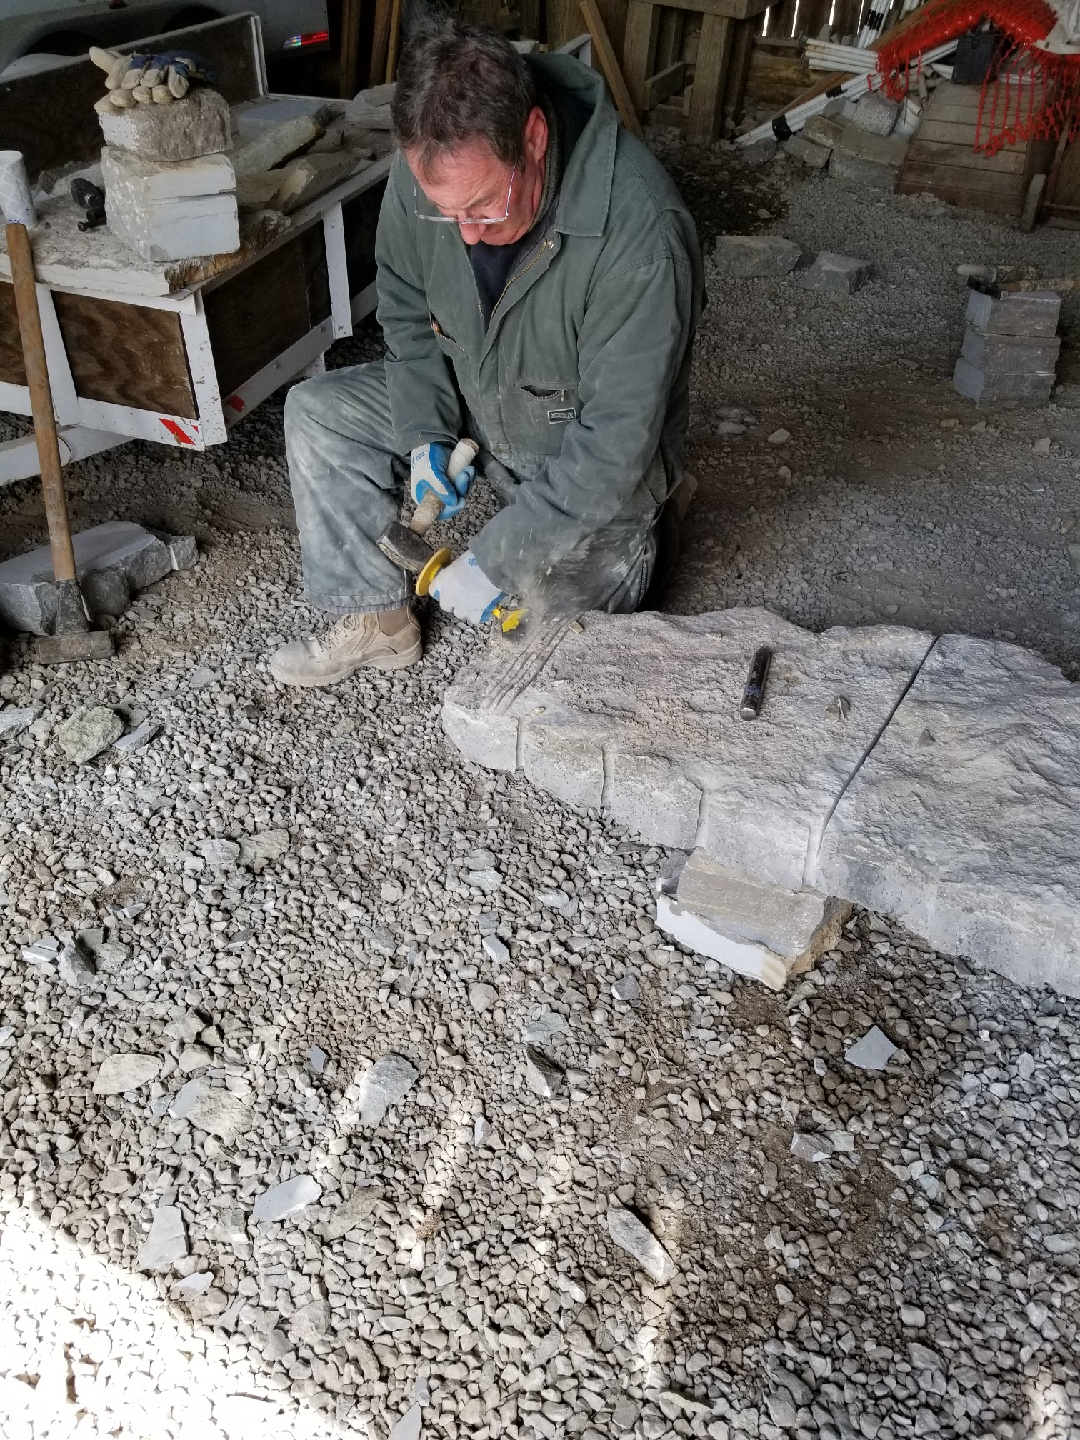 Stone Dressing Clinics - March 16-17, 2019 at Shaker Village of Pleasant Hill